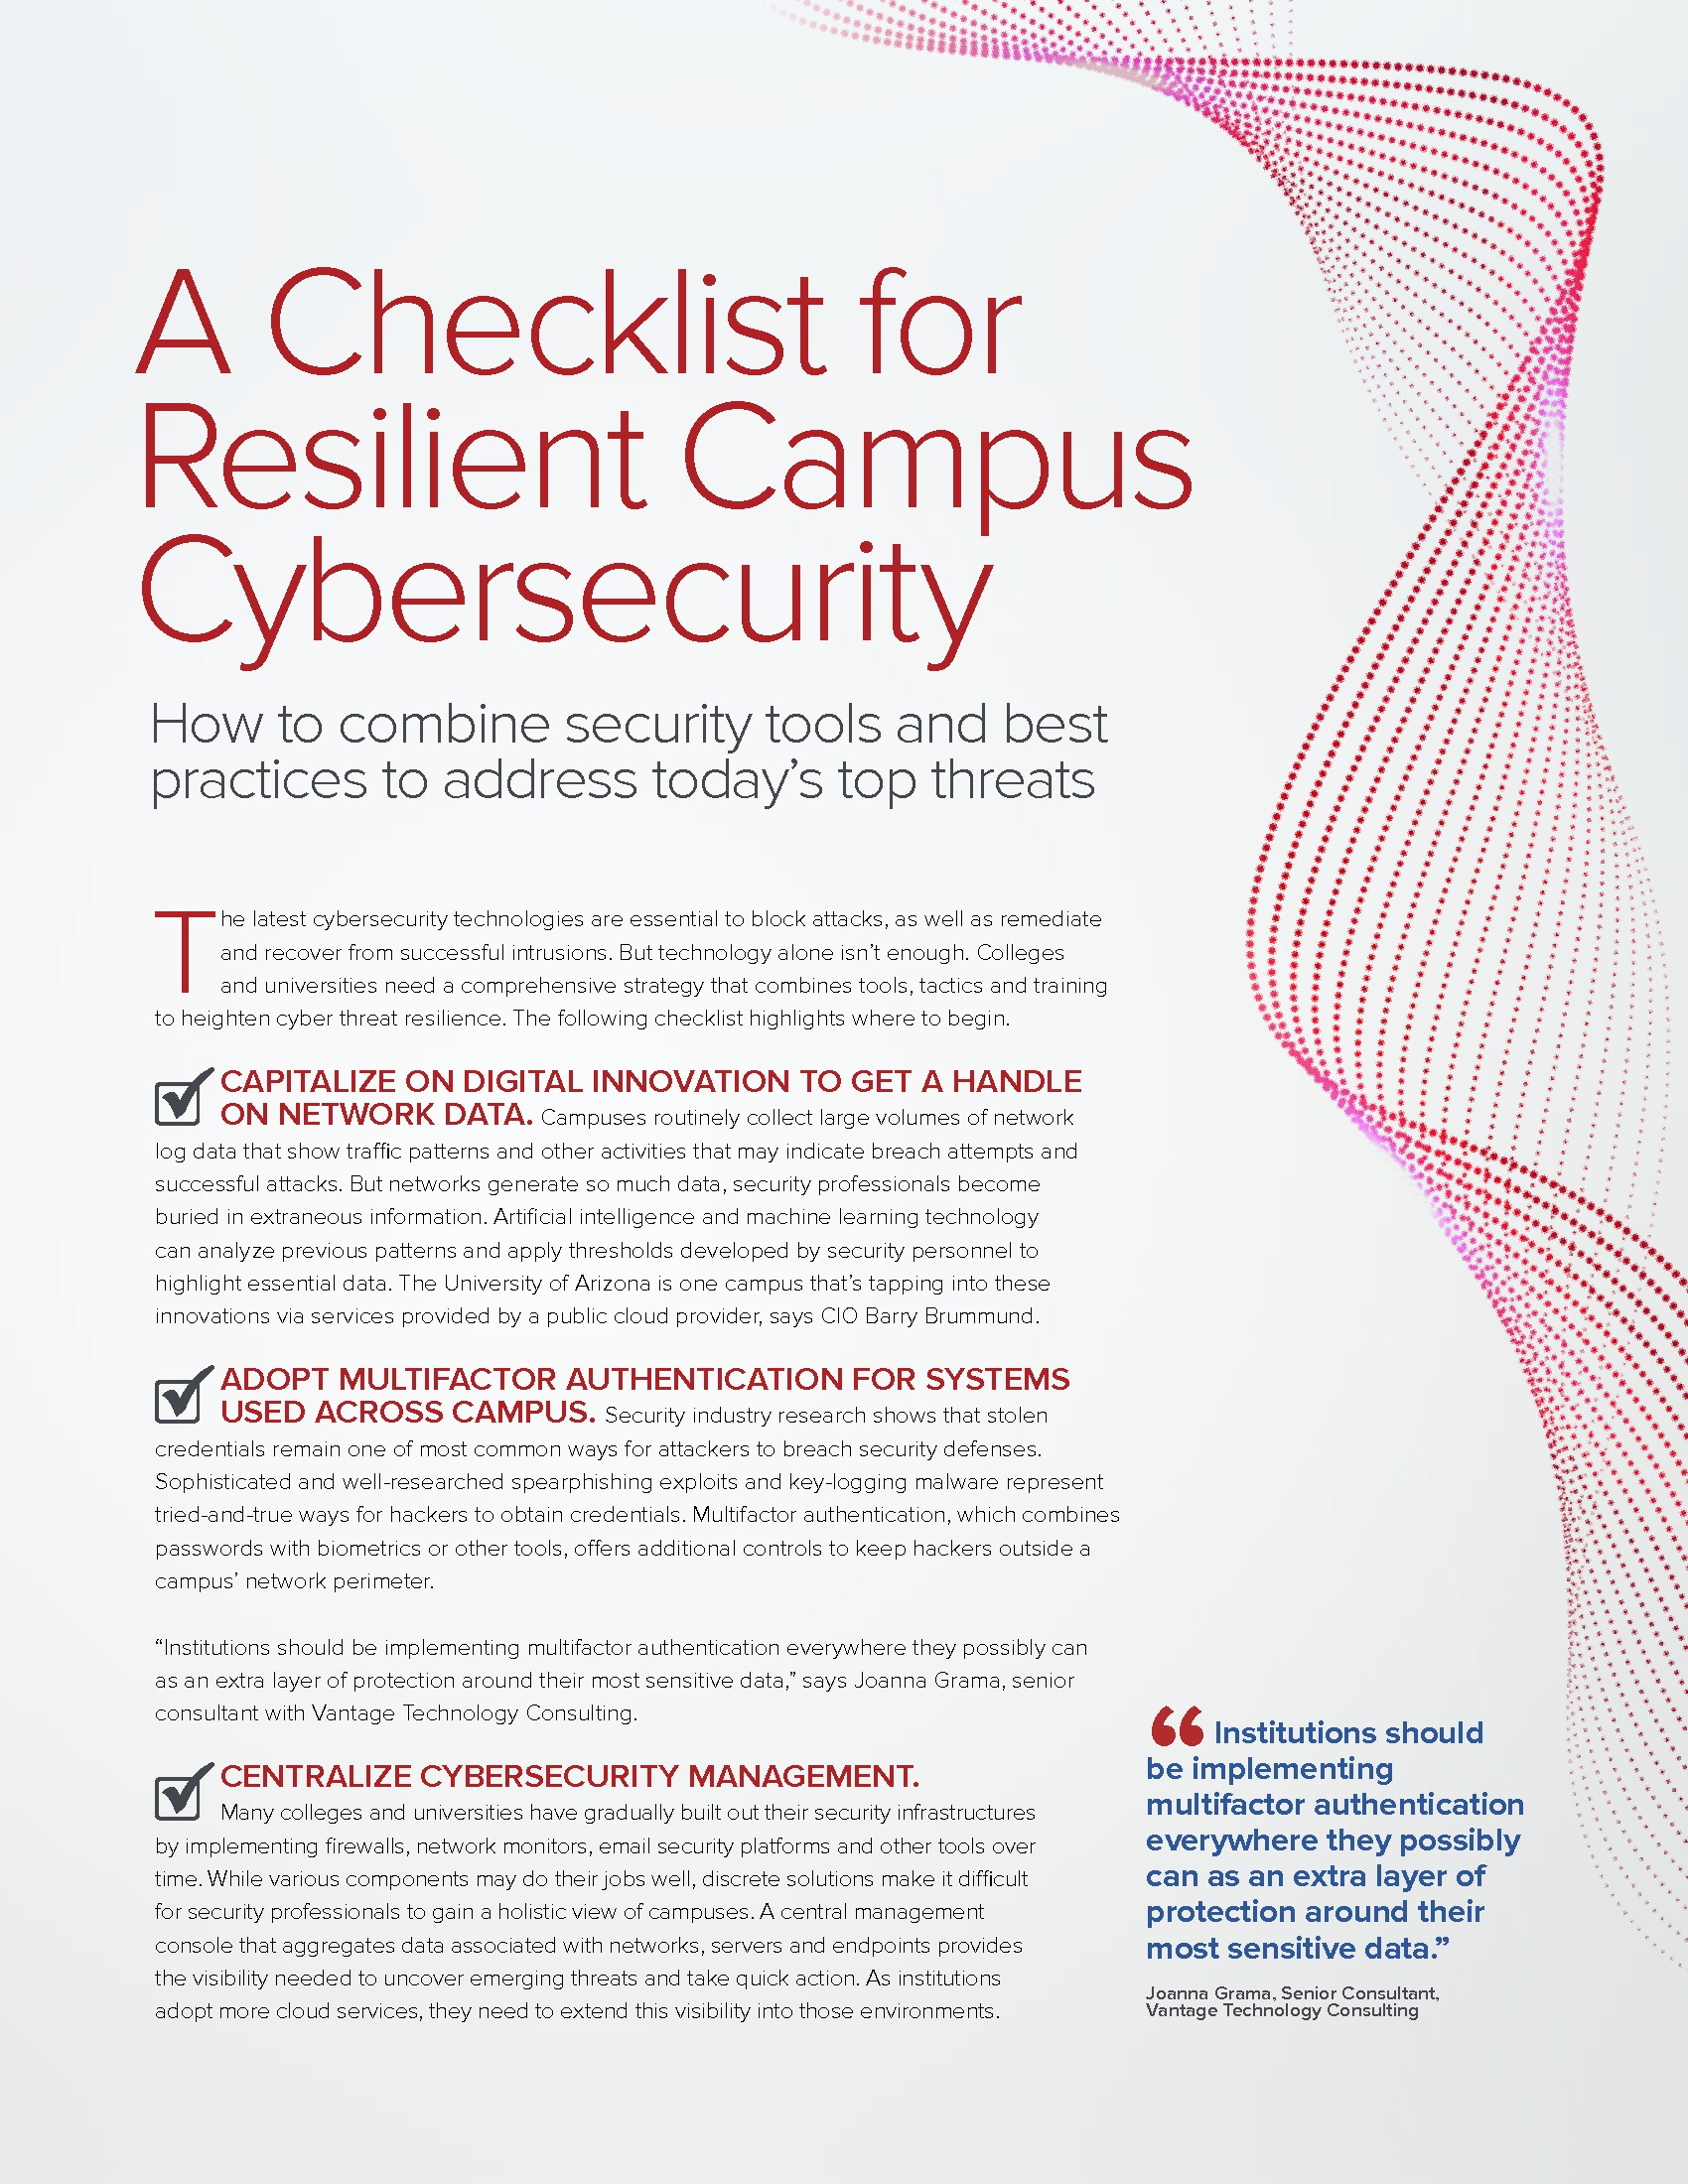 A Checklist for Resilient Campus Cybersecurity